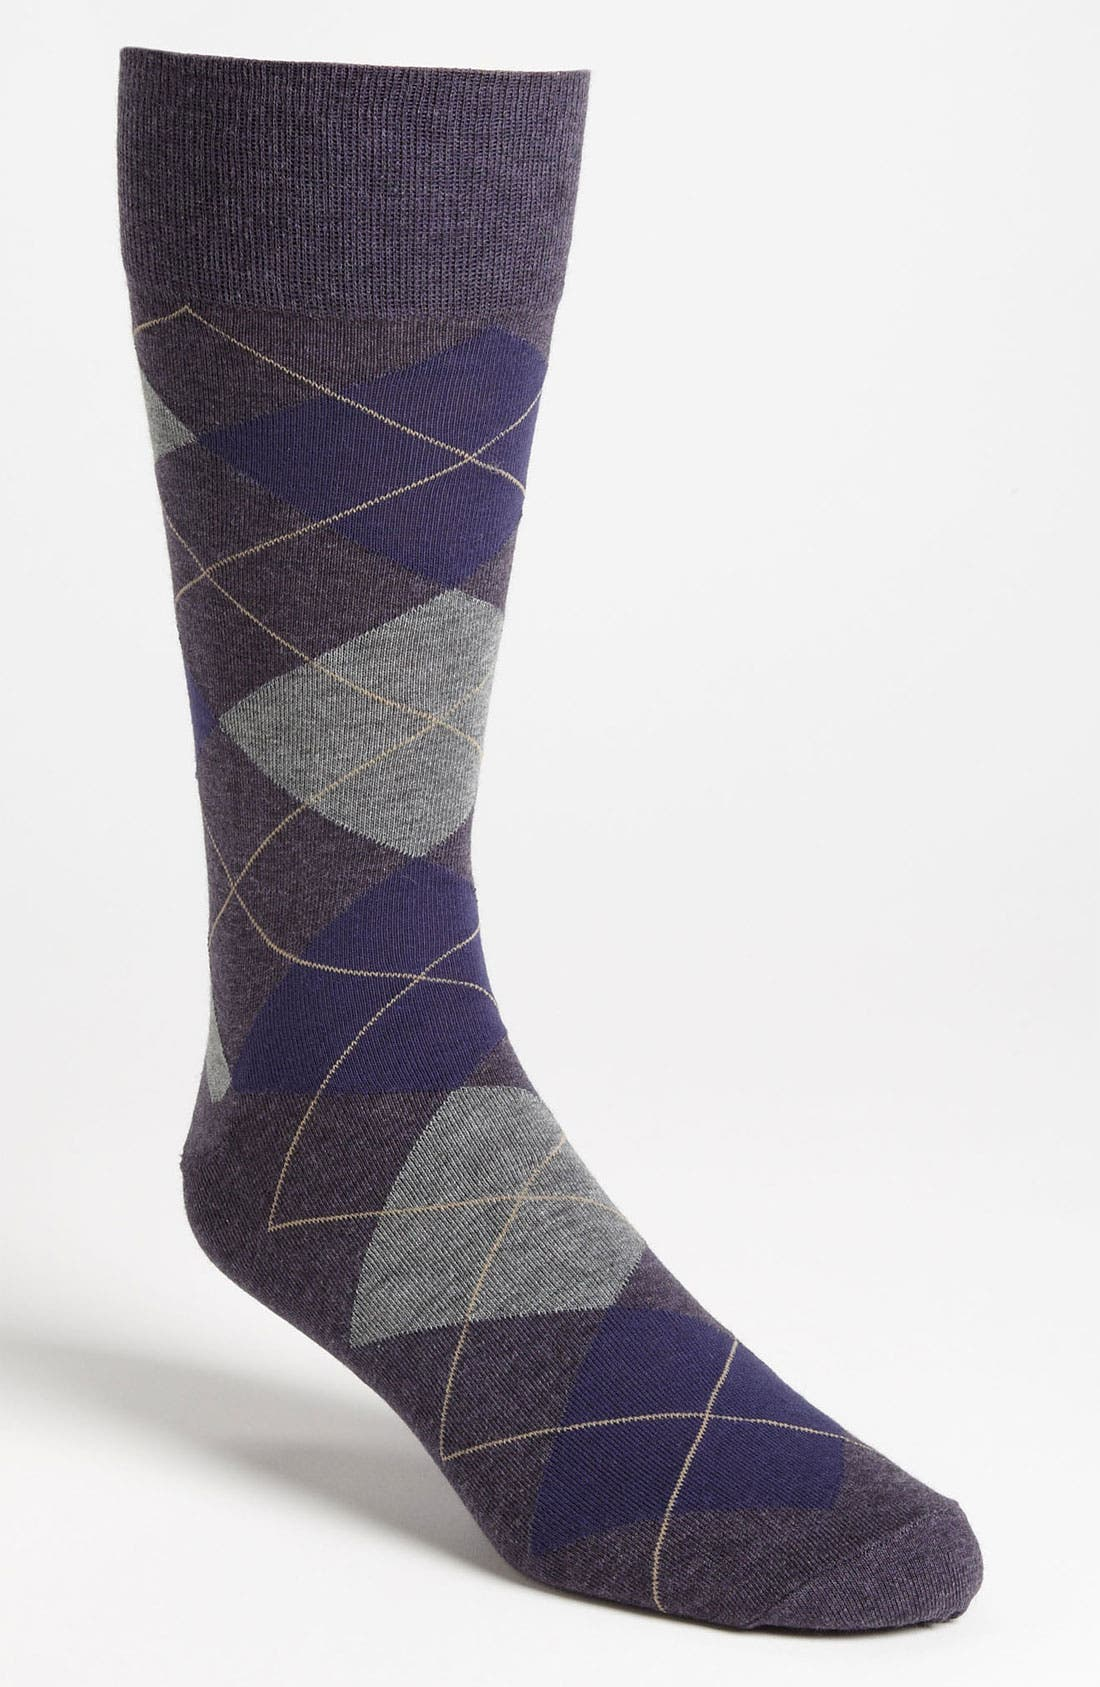 Alternate Image 1 Selected - Cole Haan 'Fashion Argyle' Socks